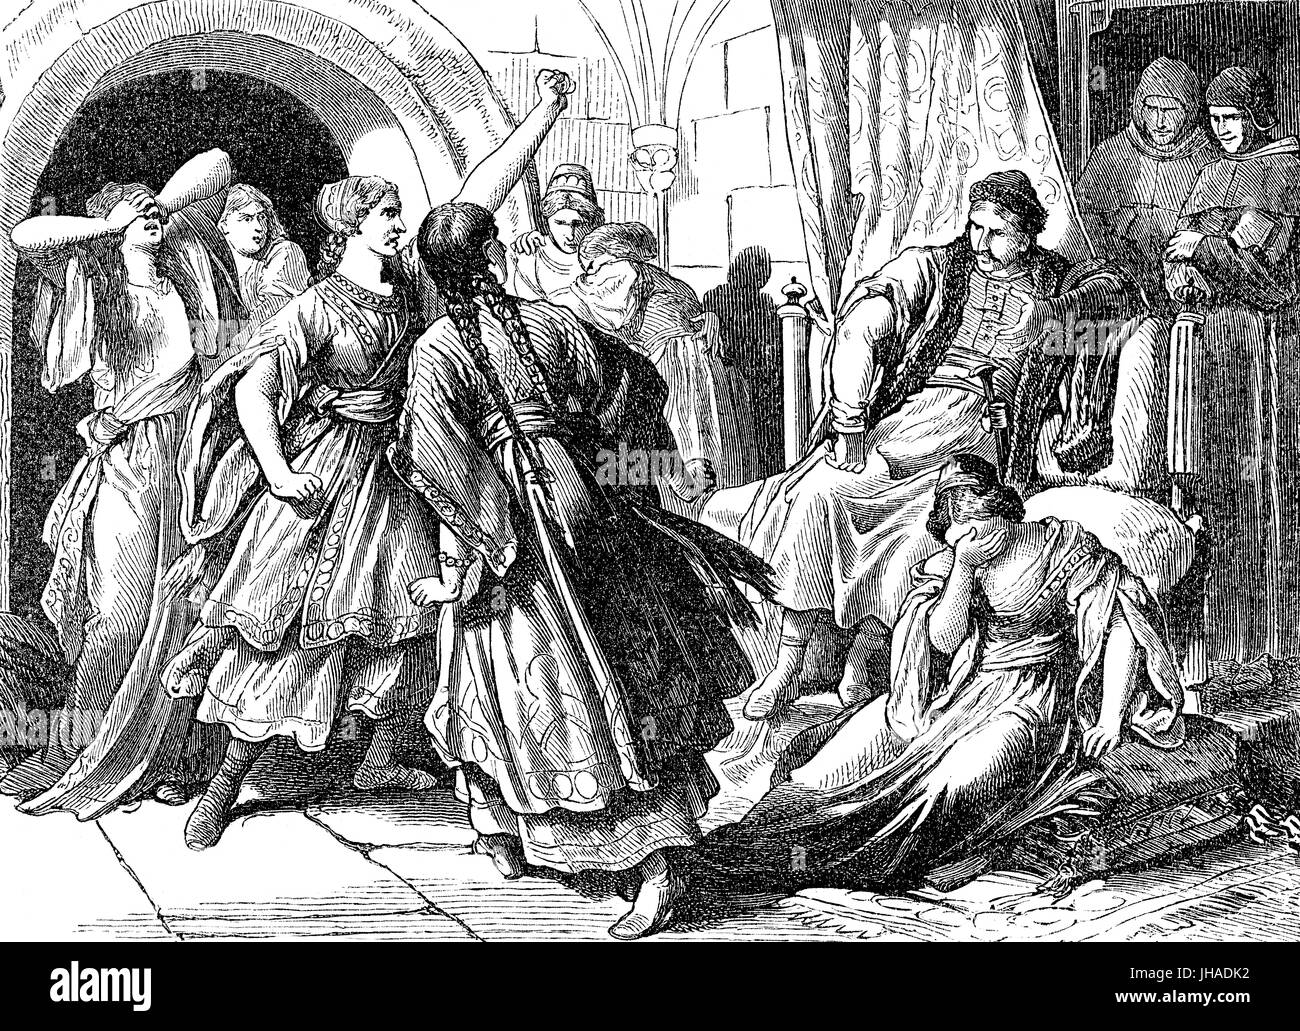 Mieszko I, ca. 930 - 992,  the ruler of the Polans, repudiating his seven pagan wives before becoming a Roman Catholic - Stock Image